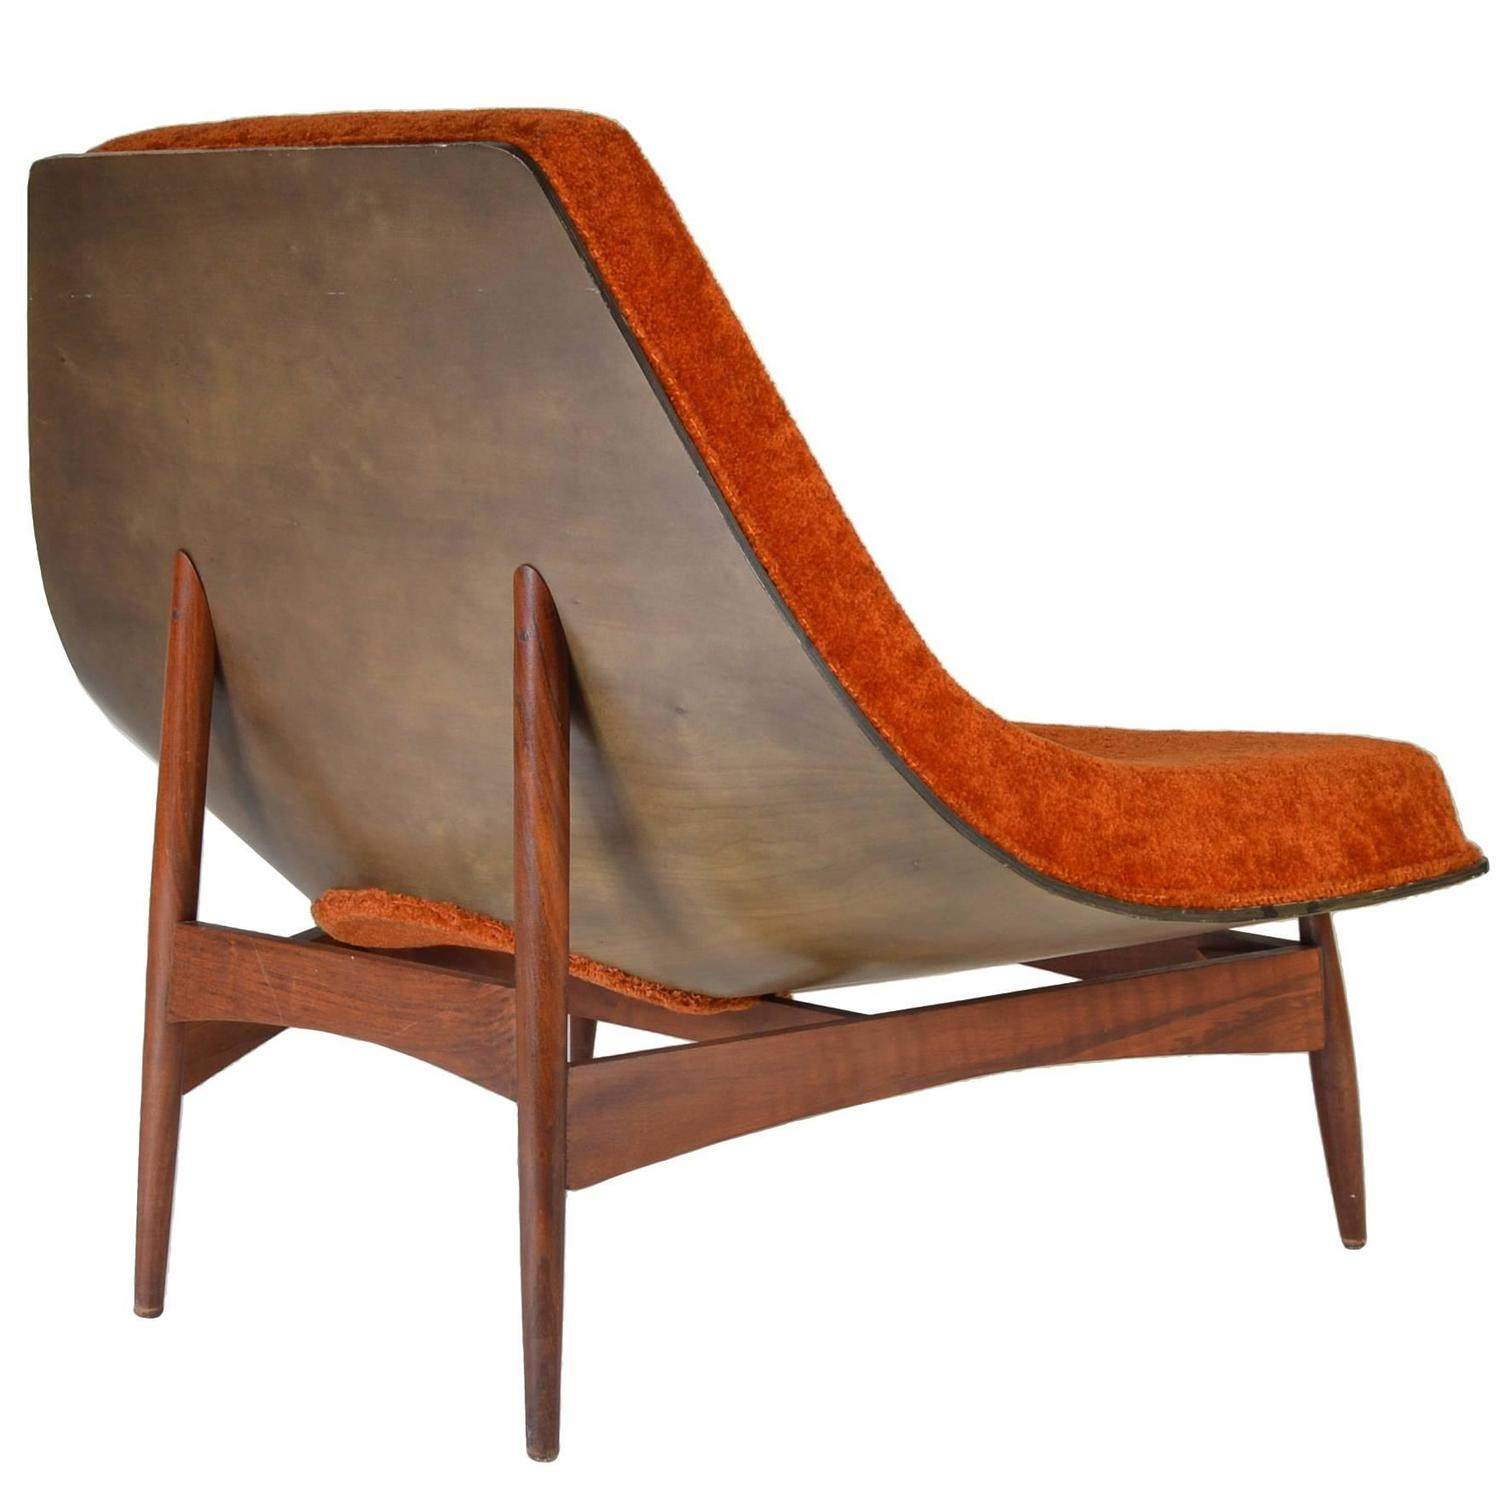 First edition a j donahue winnipeg chair or the canadian coconut chair at 1stdibs